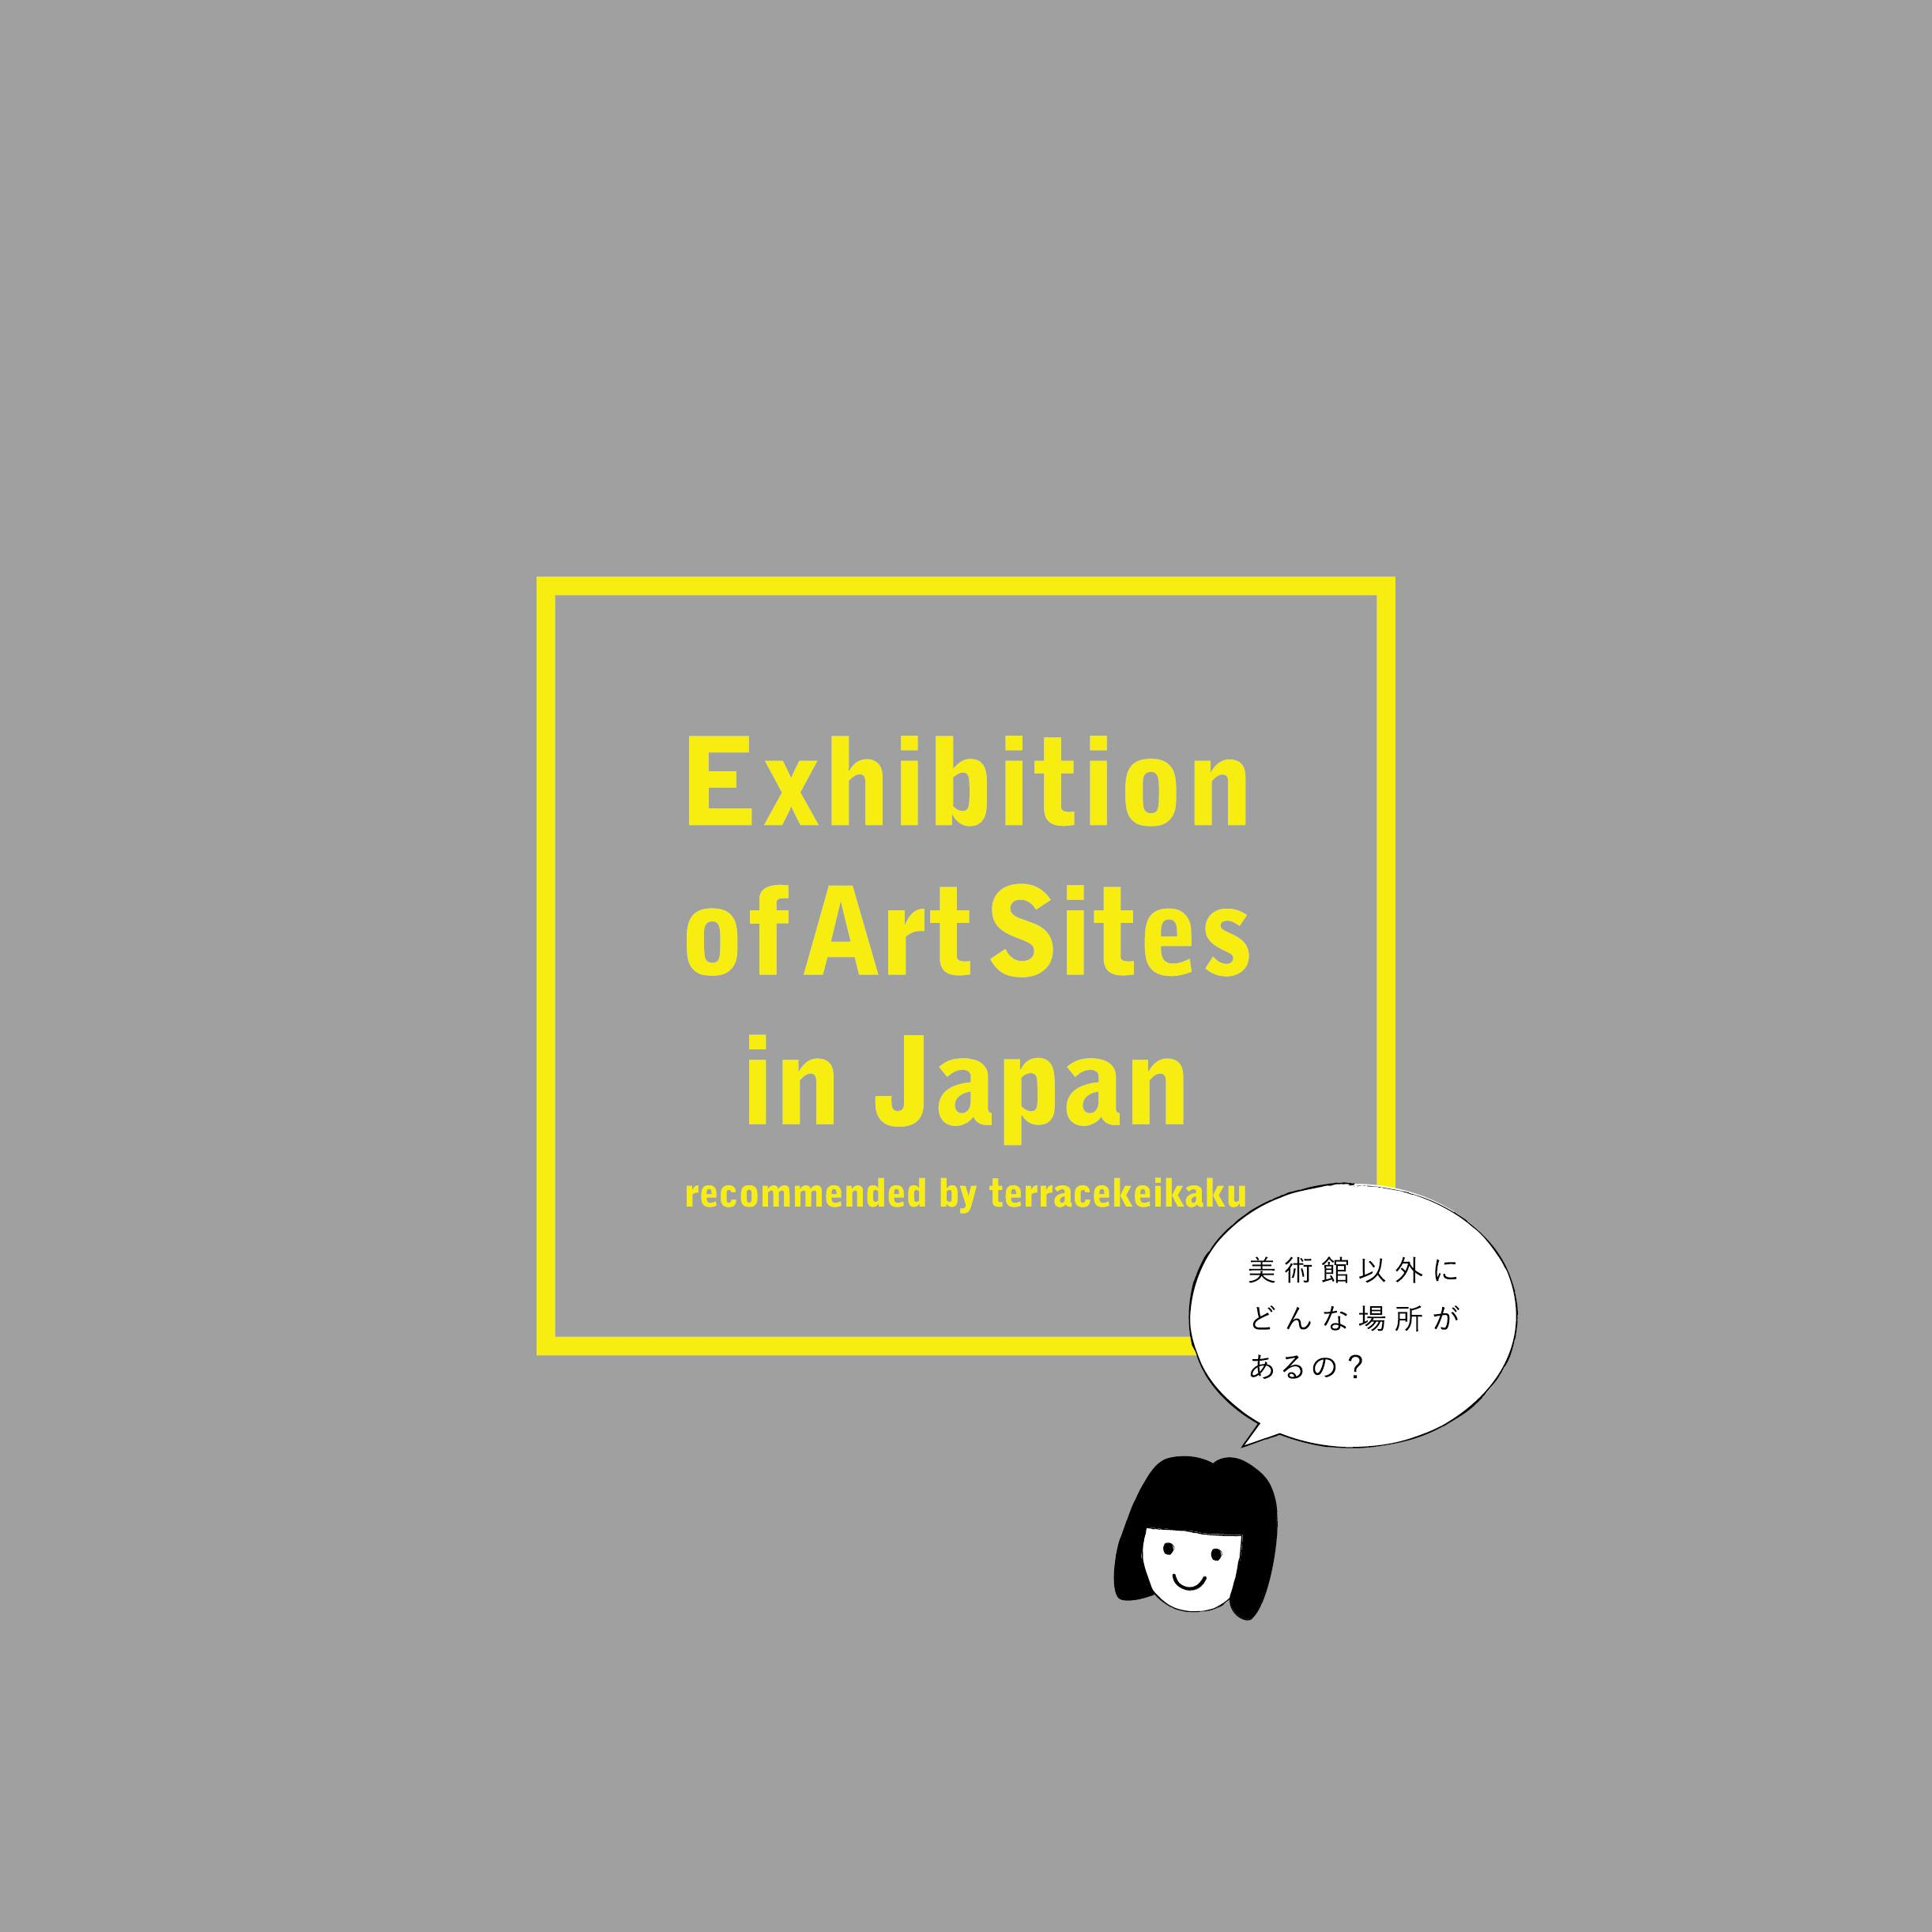 Exhibition of Art Sites in Japan